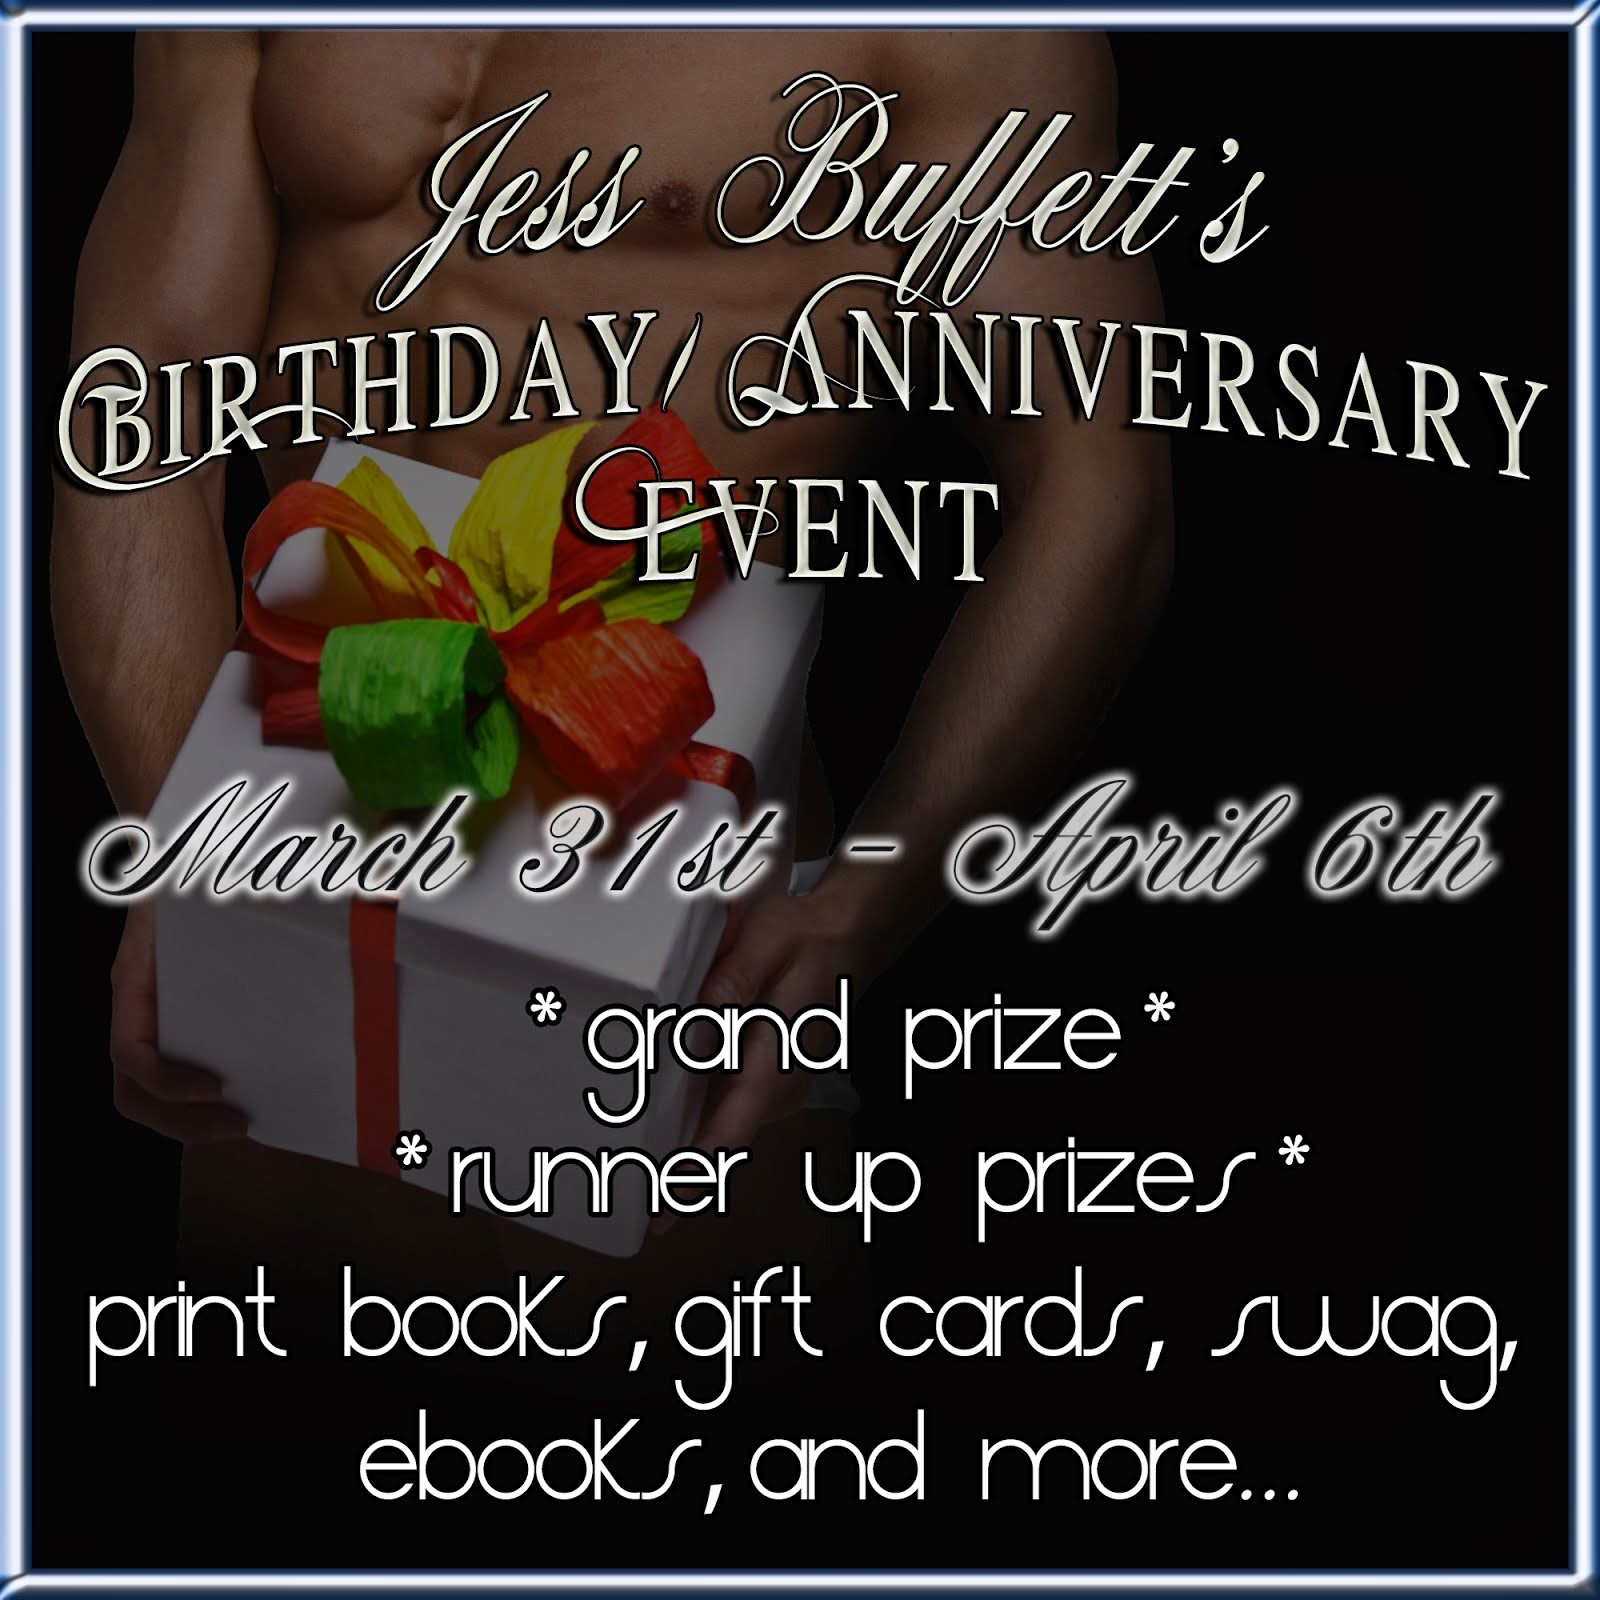 Jess Buffett's Birthday Party